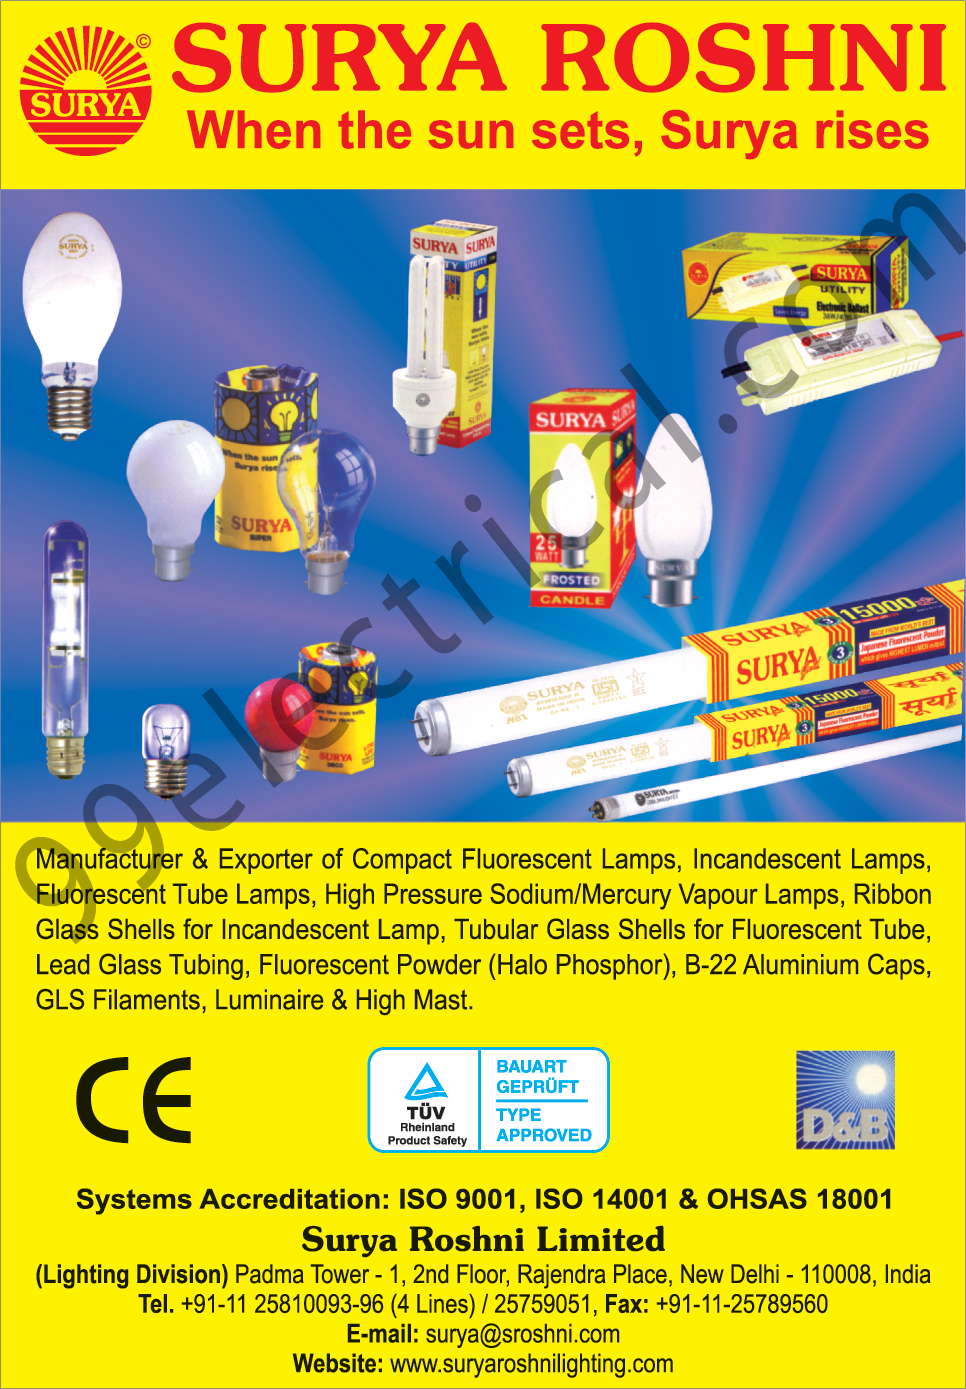 Compact Fluorescent Lamps, CFL, Incandescent Lamps, Fluorescent Tube Lamps, FTL, Sodium Vapour Lamps, Mercury Vapour Lamps, Incandescent Lamp Ribbon Glass Shells, Fluorescent Tube Tubular Glass Shells, Lead Glass Tubing, Fluorescent Powders, Halo Phosphor, B 22 Aluminum Caps, GLS Filaments, Luminaire, High Mast,Fluorescent Tube Lamp, Lamps, Luminaries Mast, Tubular Glass Shells CFL, Down lighters, Led Lamps, Lighting Fixtures, Outdoor, Lighting Fixtures, T5 FTL, Industrial Lights, Flood Lights, Electrical Accessories, Street Lights, Led Lights, Led Bulbs, Led Tubes, CFL, GLS, Choke, Starter, Electrical Items, Electrical Product,